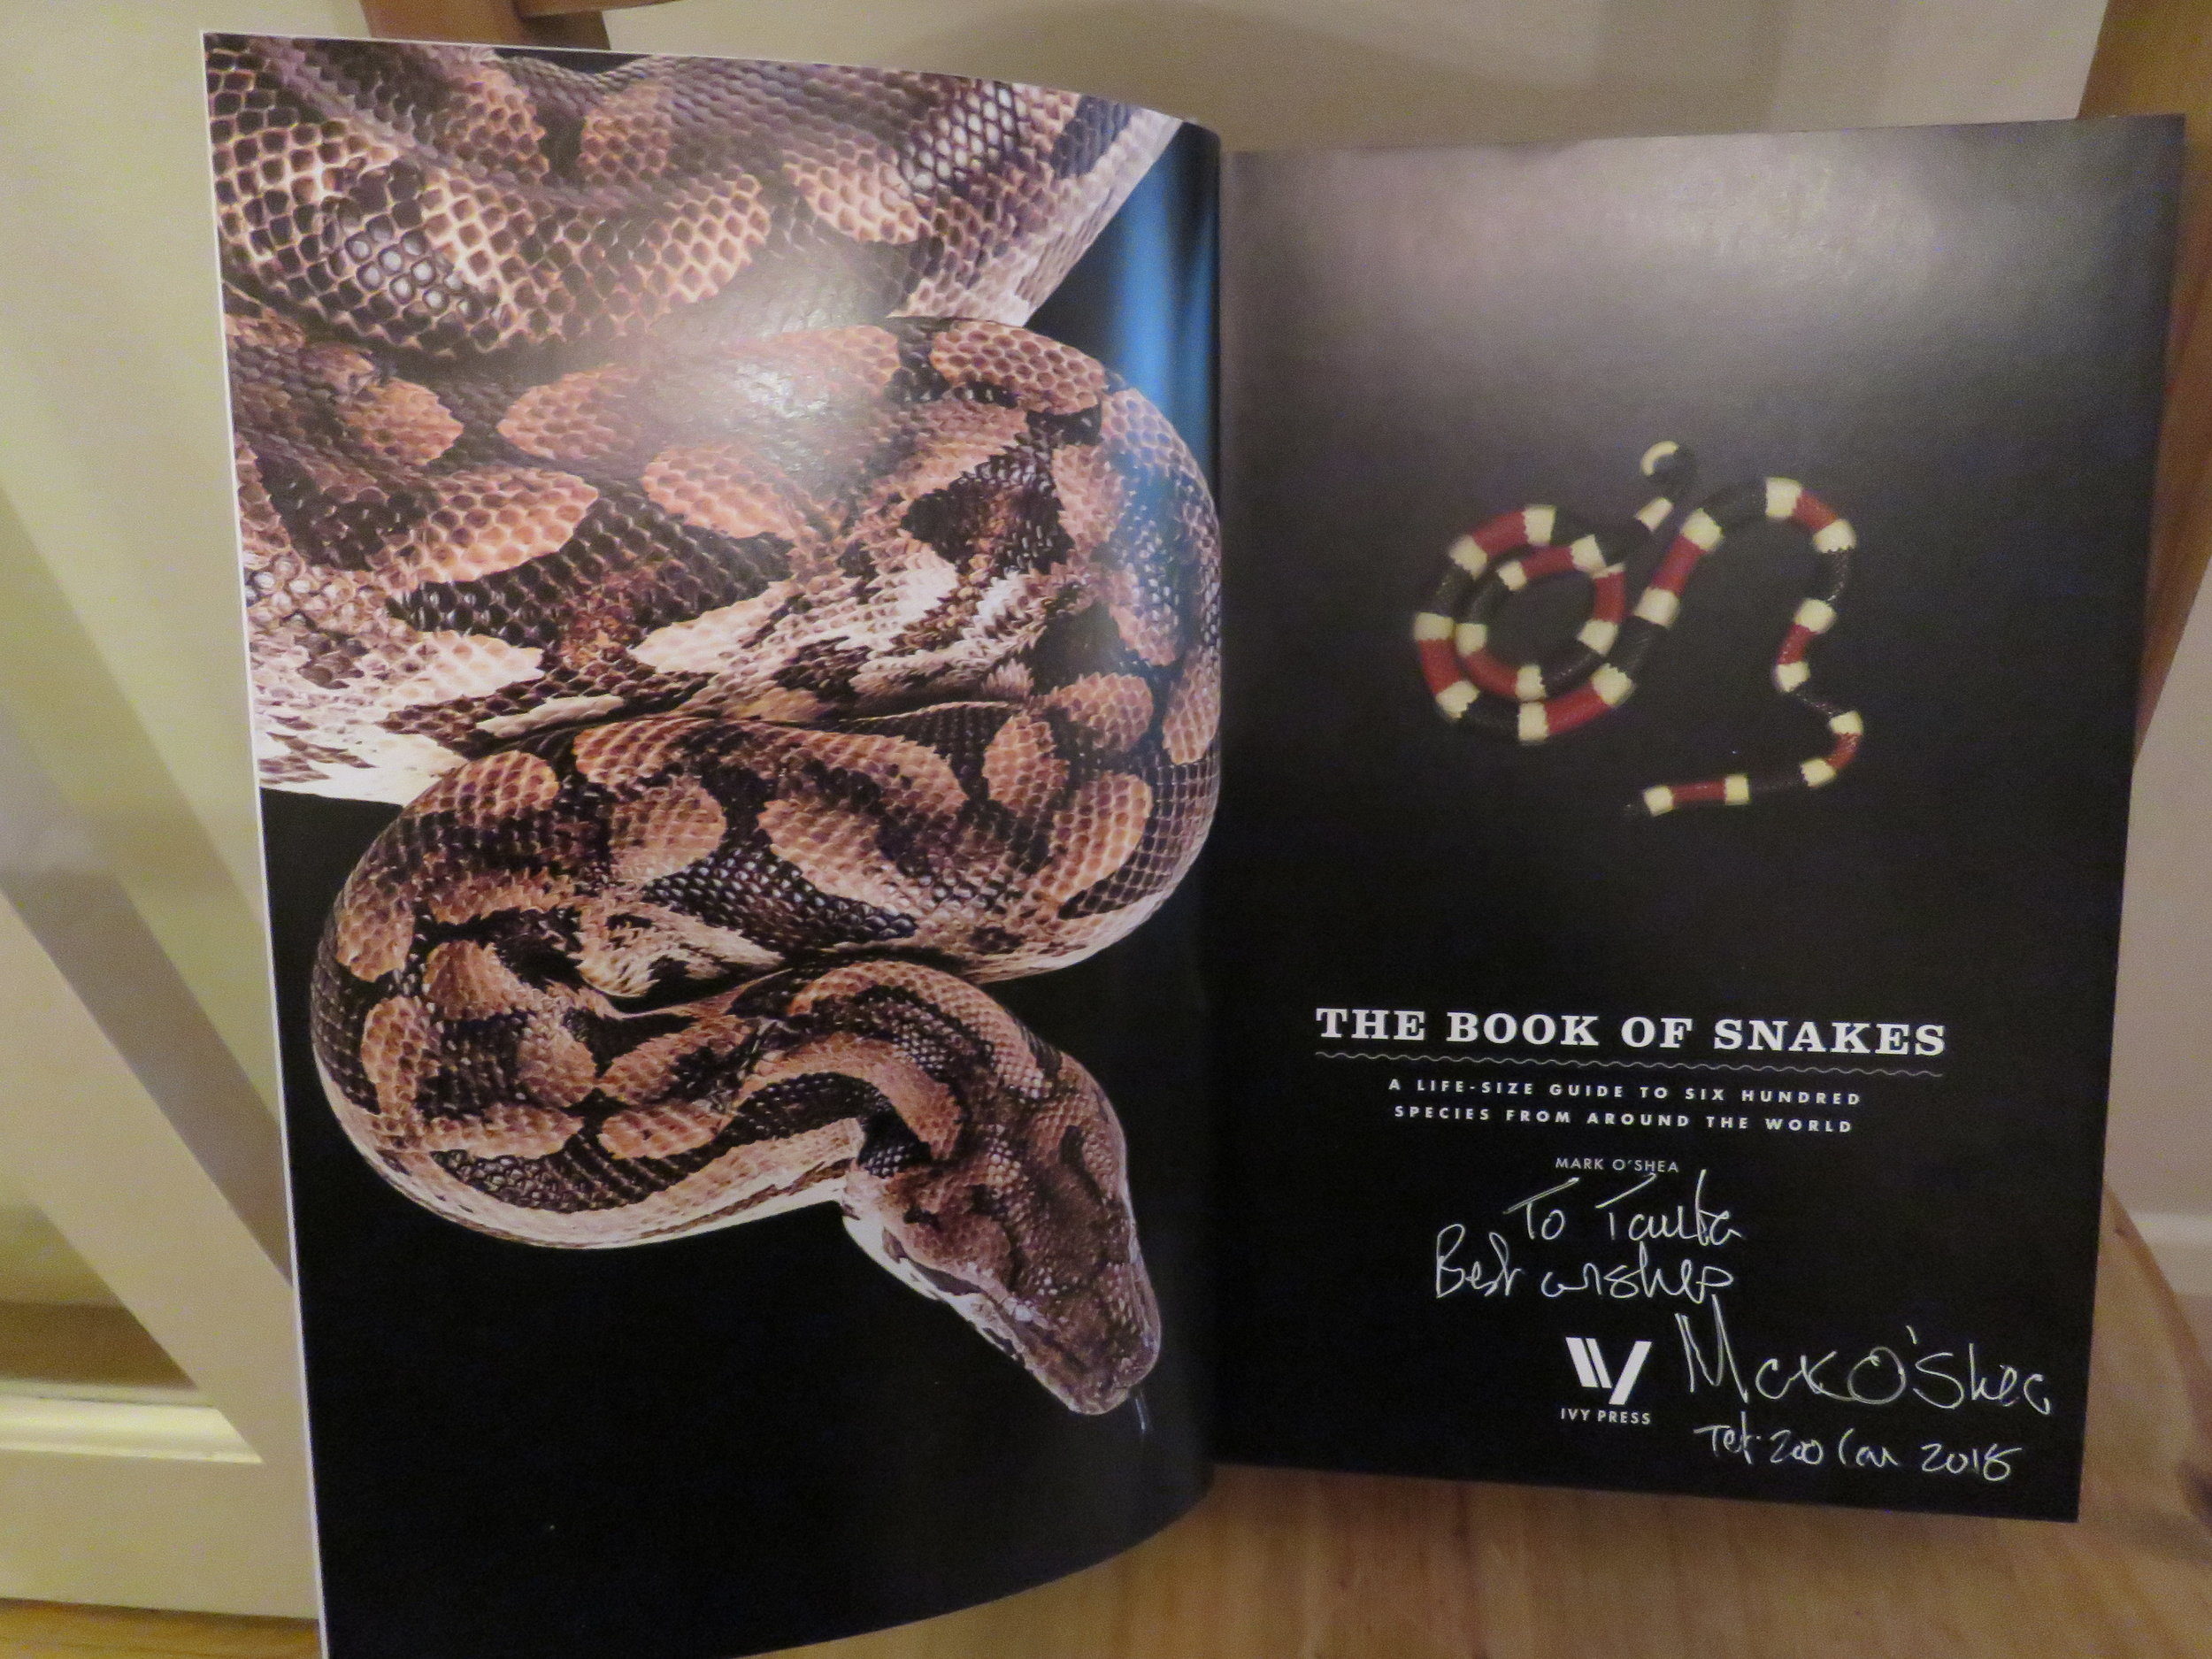 My signed copy of Mark O'Shea's new book 'The Book of Snakes' | Credit: Talita Bateman